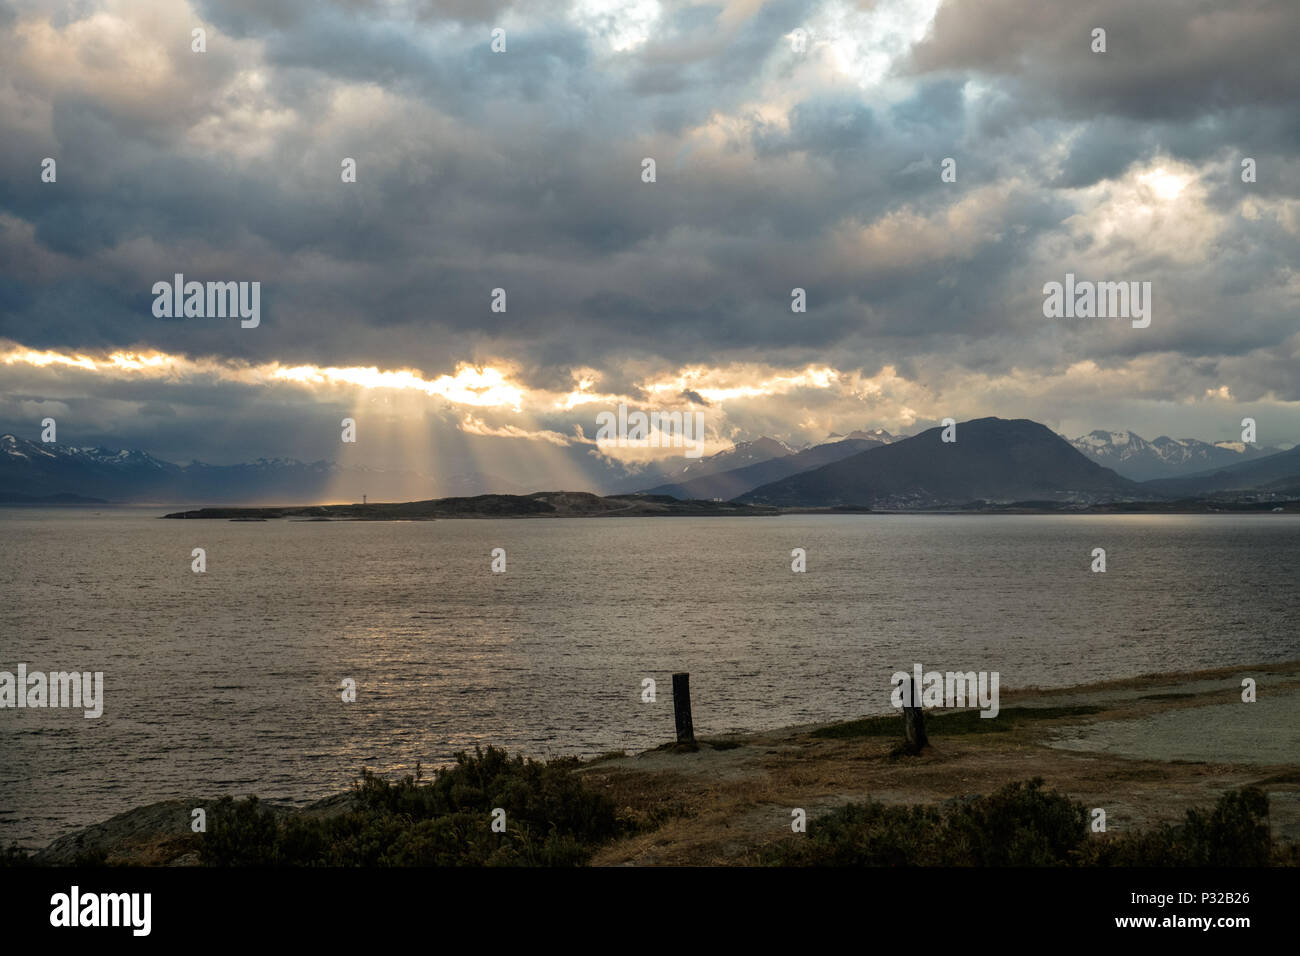 The sun finds an opening in the clouds and enlightens parts of Ushuaia. This photo is taken in Playa Larga, a popular day trip at the Beagle Channel. Stock Photo